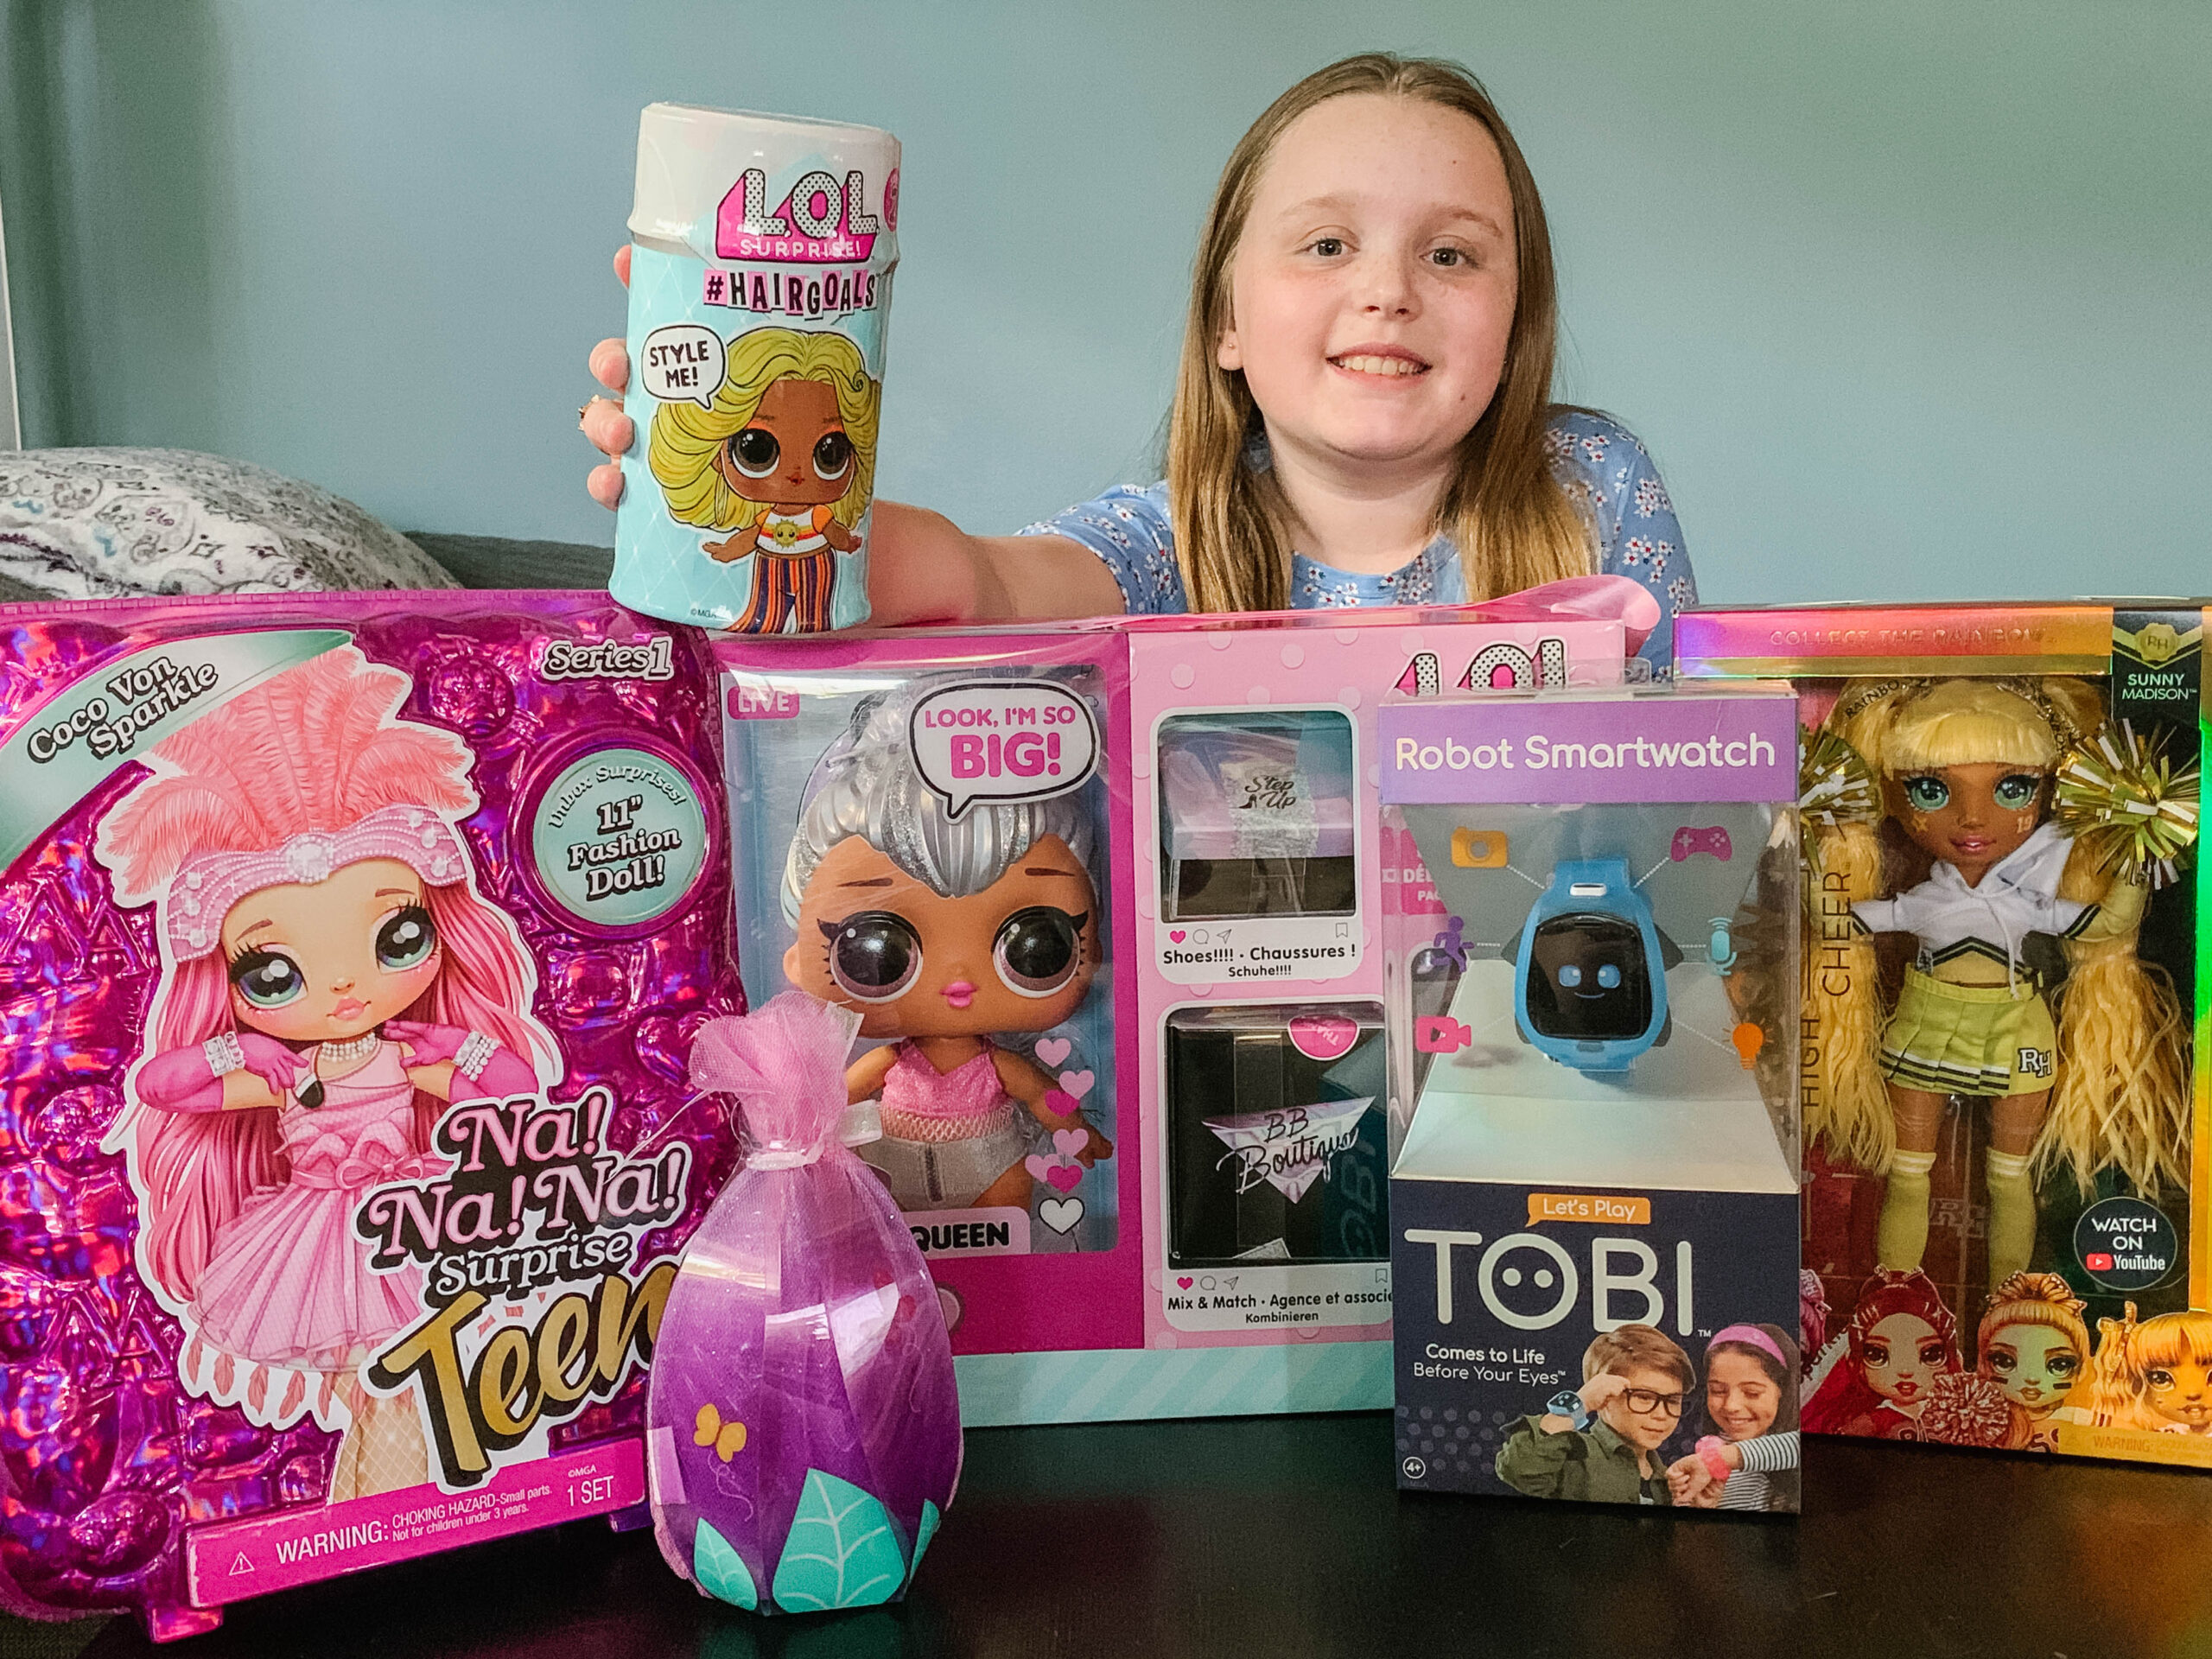 MGM Entertainment line of Toys, Na! Na! Na! Surprise Teens, Rainbow High, Tobi Smartwatch